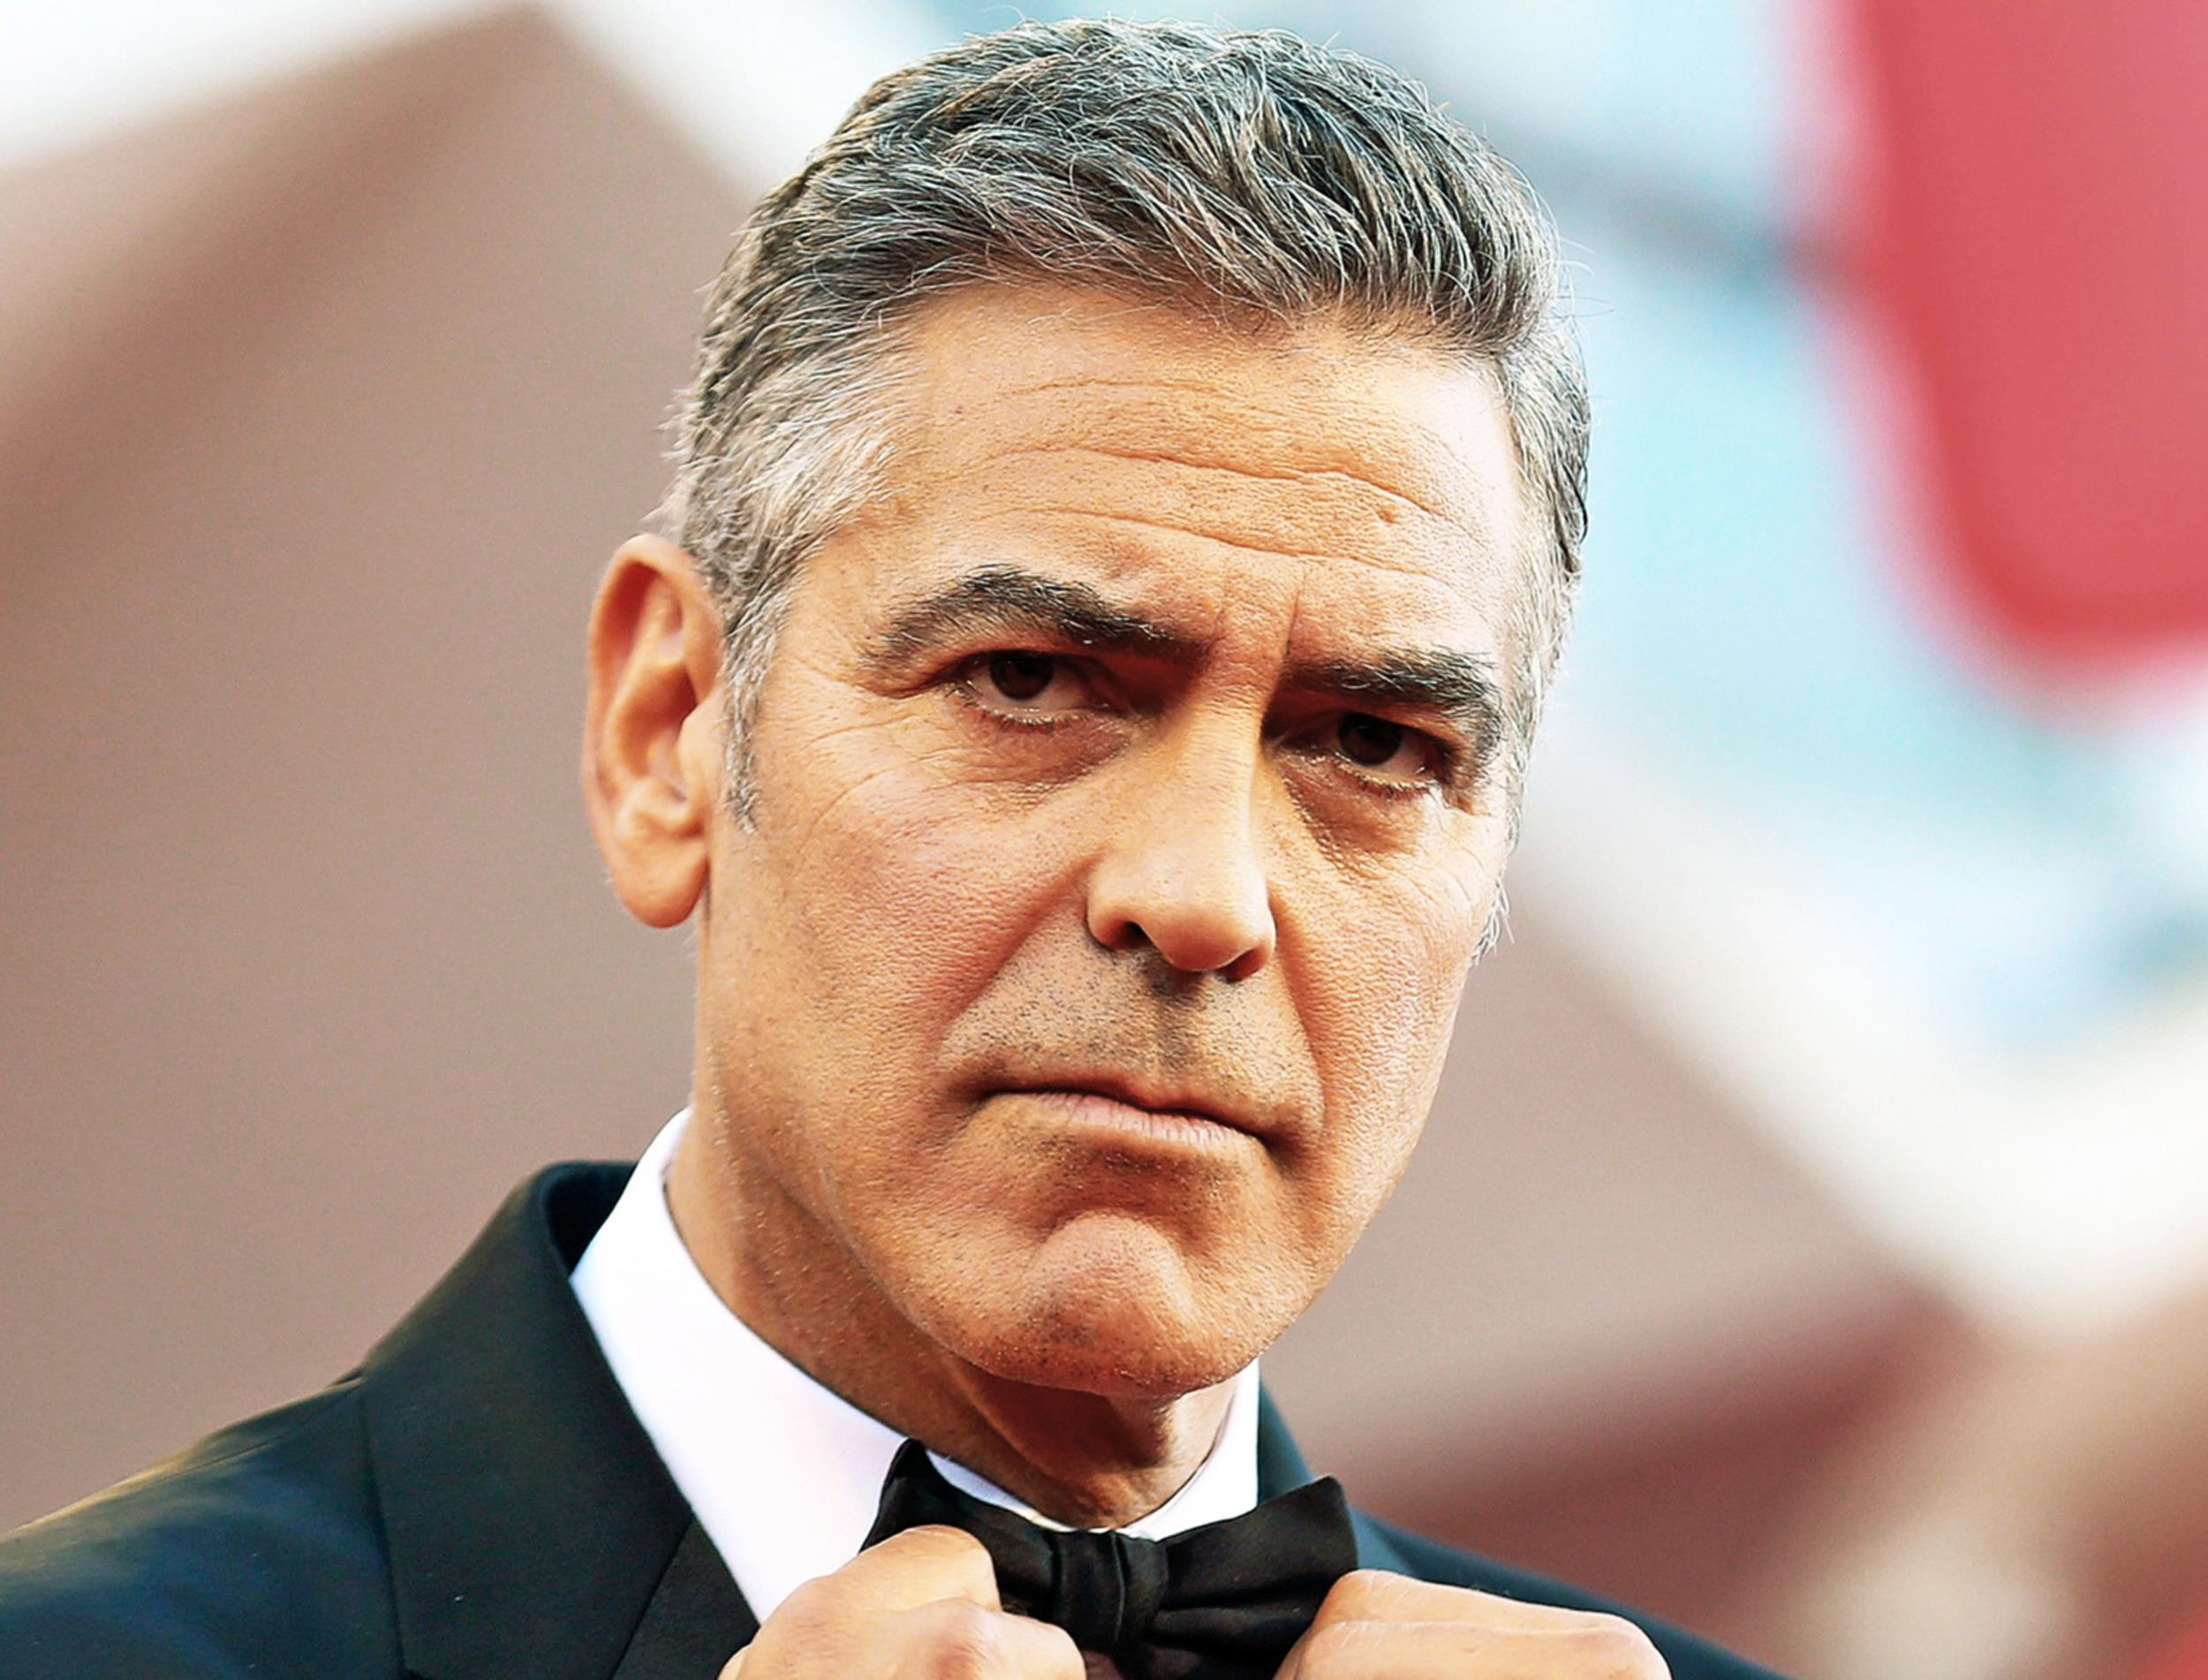 George Clooney Calls for Online Release of 'The Interview' - NBC News